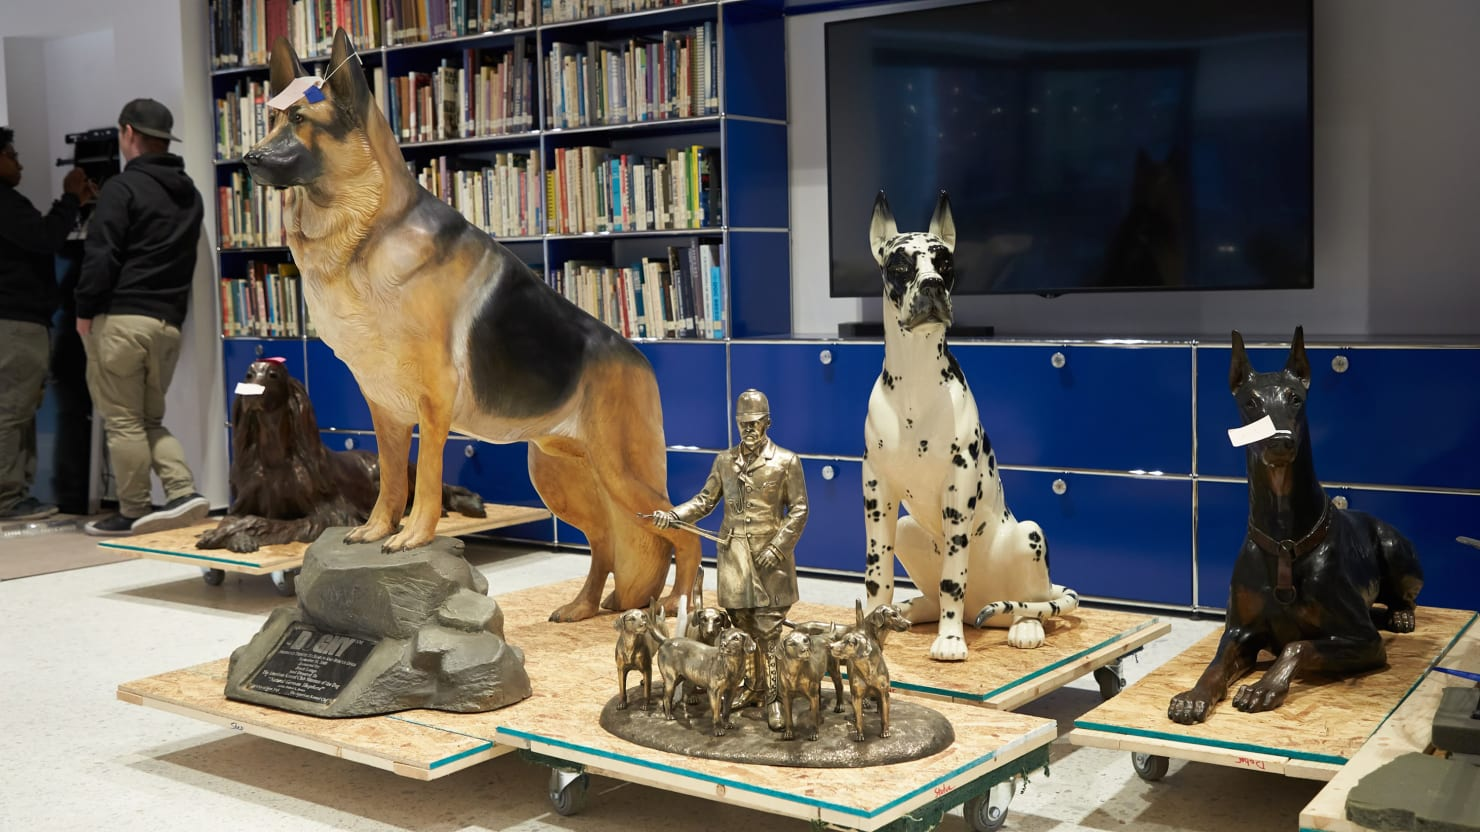 If You Love Dogs This New York City Museum Is For You